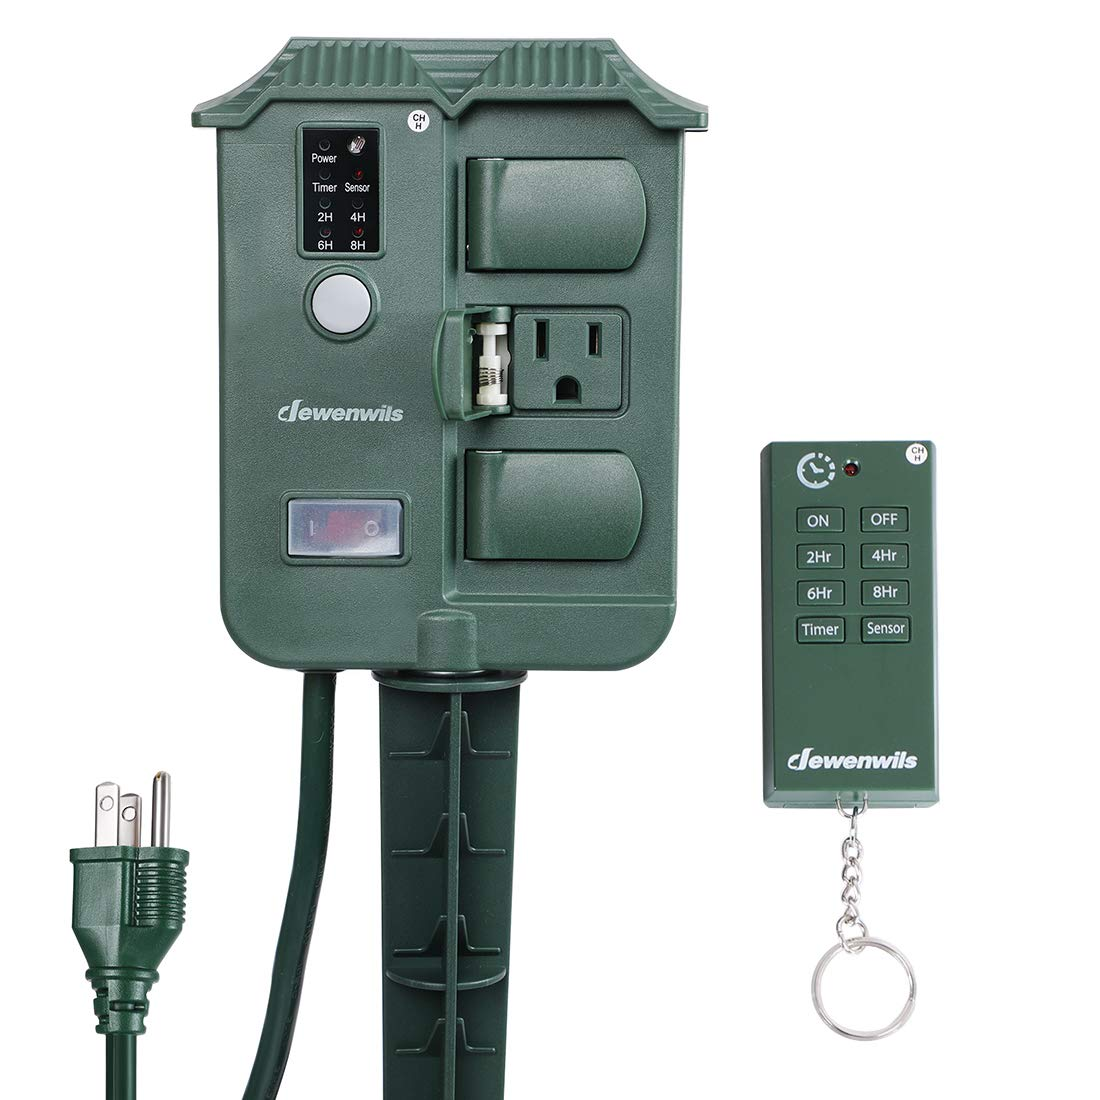 Dewenwils outdoor power strip weatherproof stake timer - Remote control exterior light switch ...